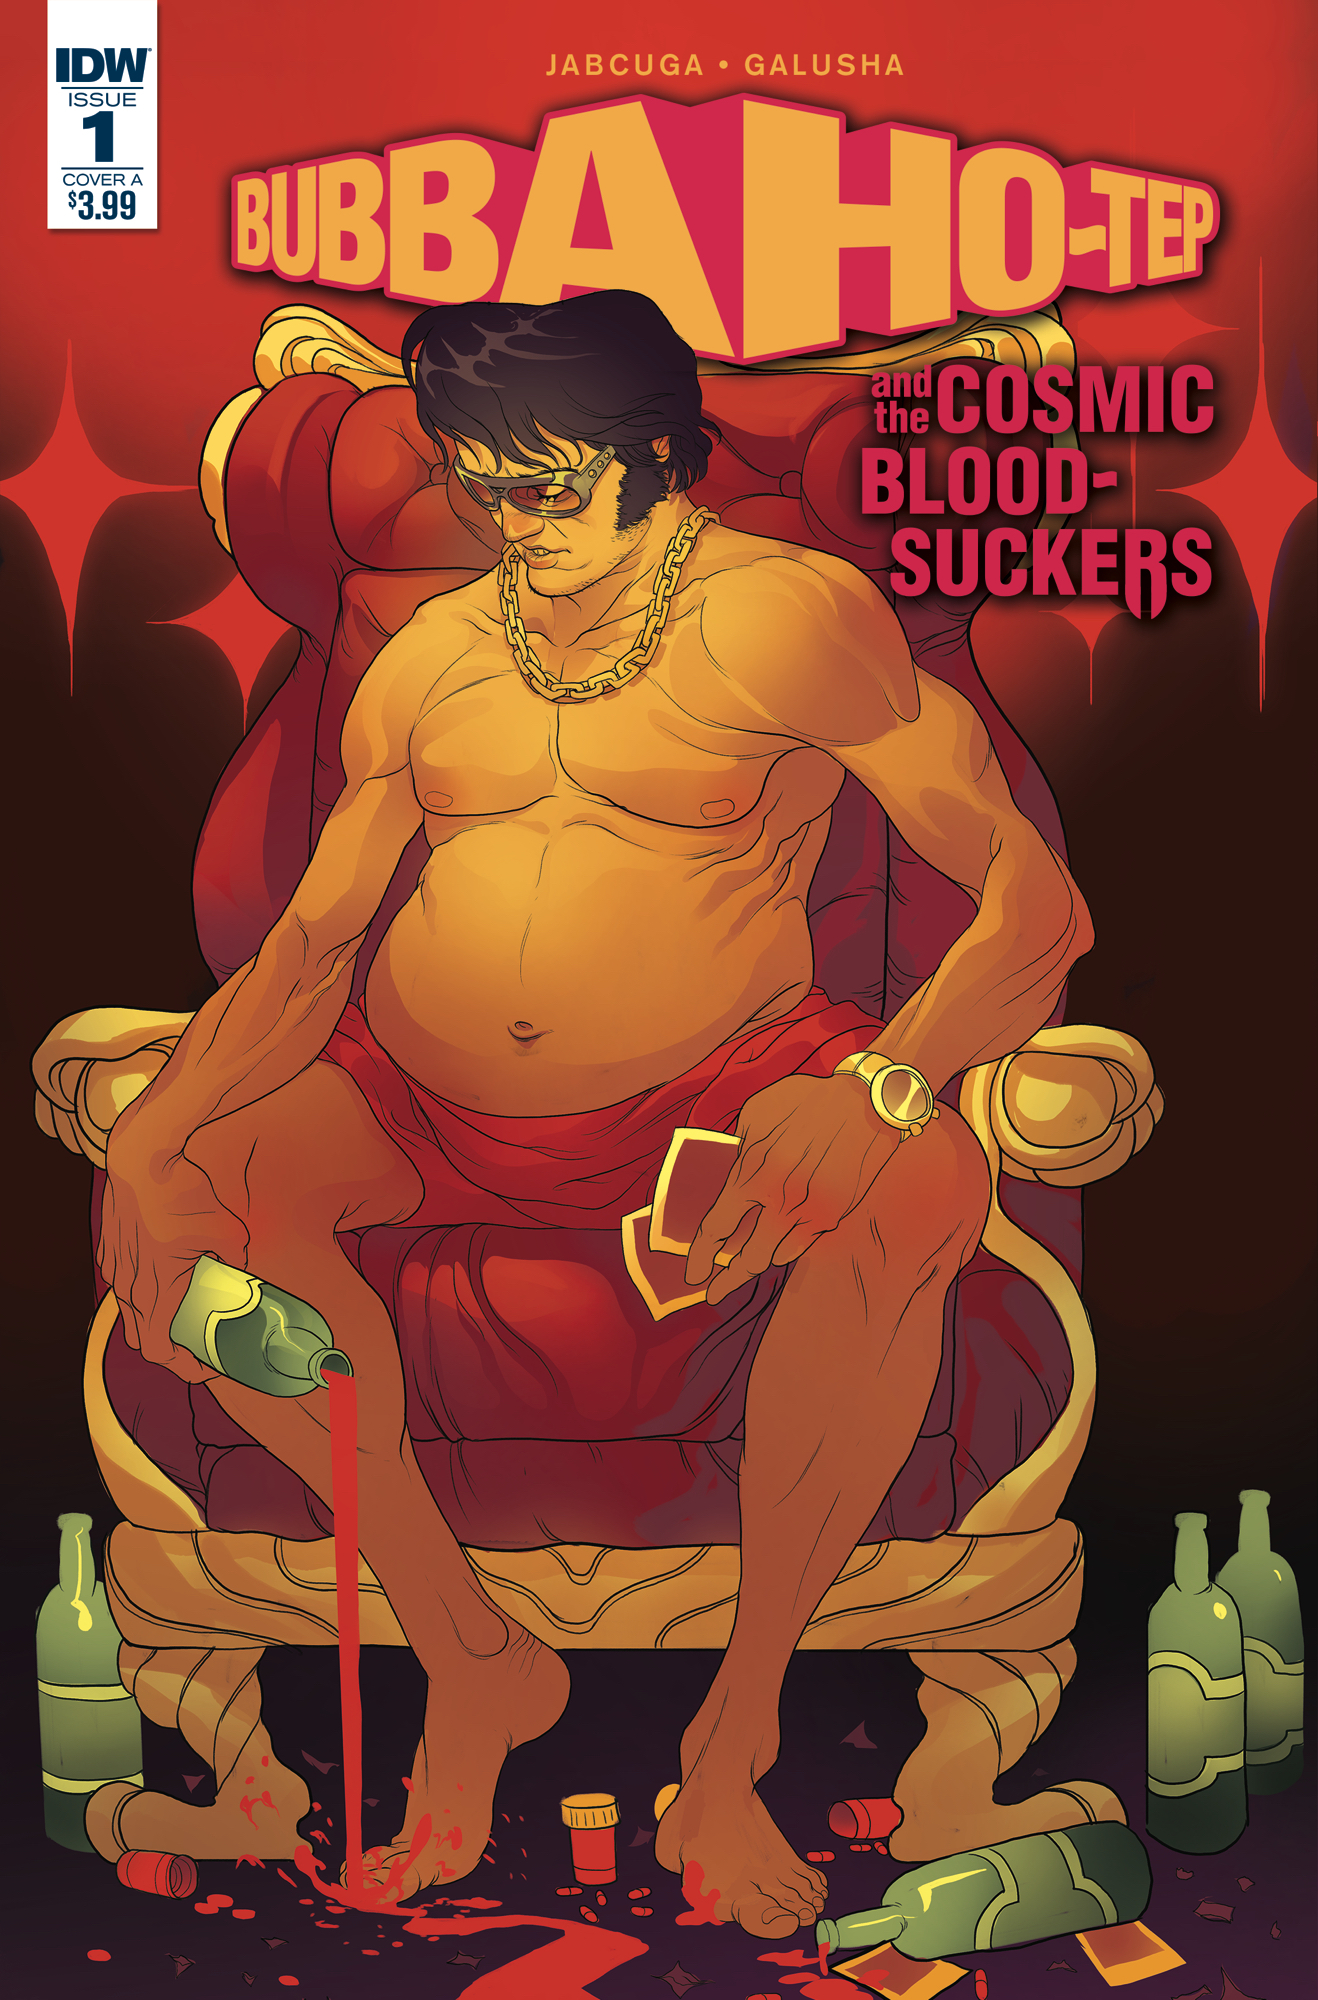 BUBBA HO-TEP & COSMIC BLOOD-SUCKERS #1 CVR A RIVAS